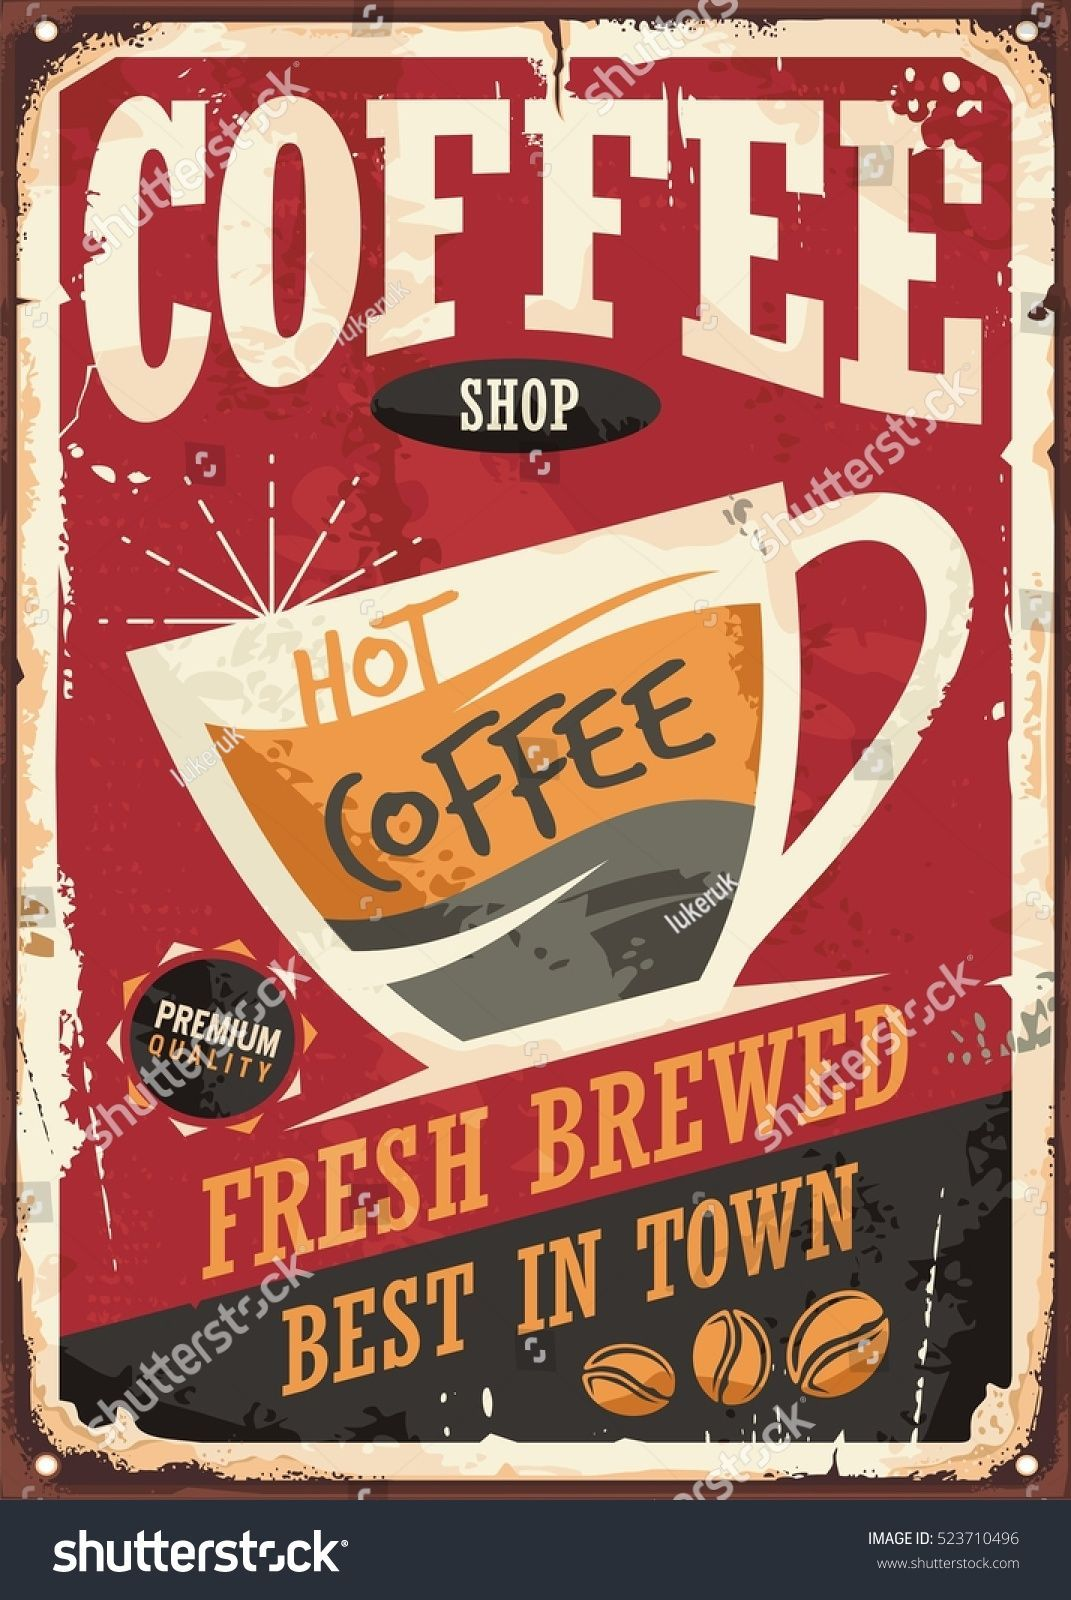 Coffee Shop Retro Tin Sign Vector Illustration On Red Background Perfect For Cafe Bar Interio In 2020 Vintage Coffee Signs Vintage Coffee Shops Coffee Shop Signs